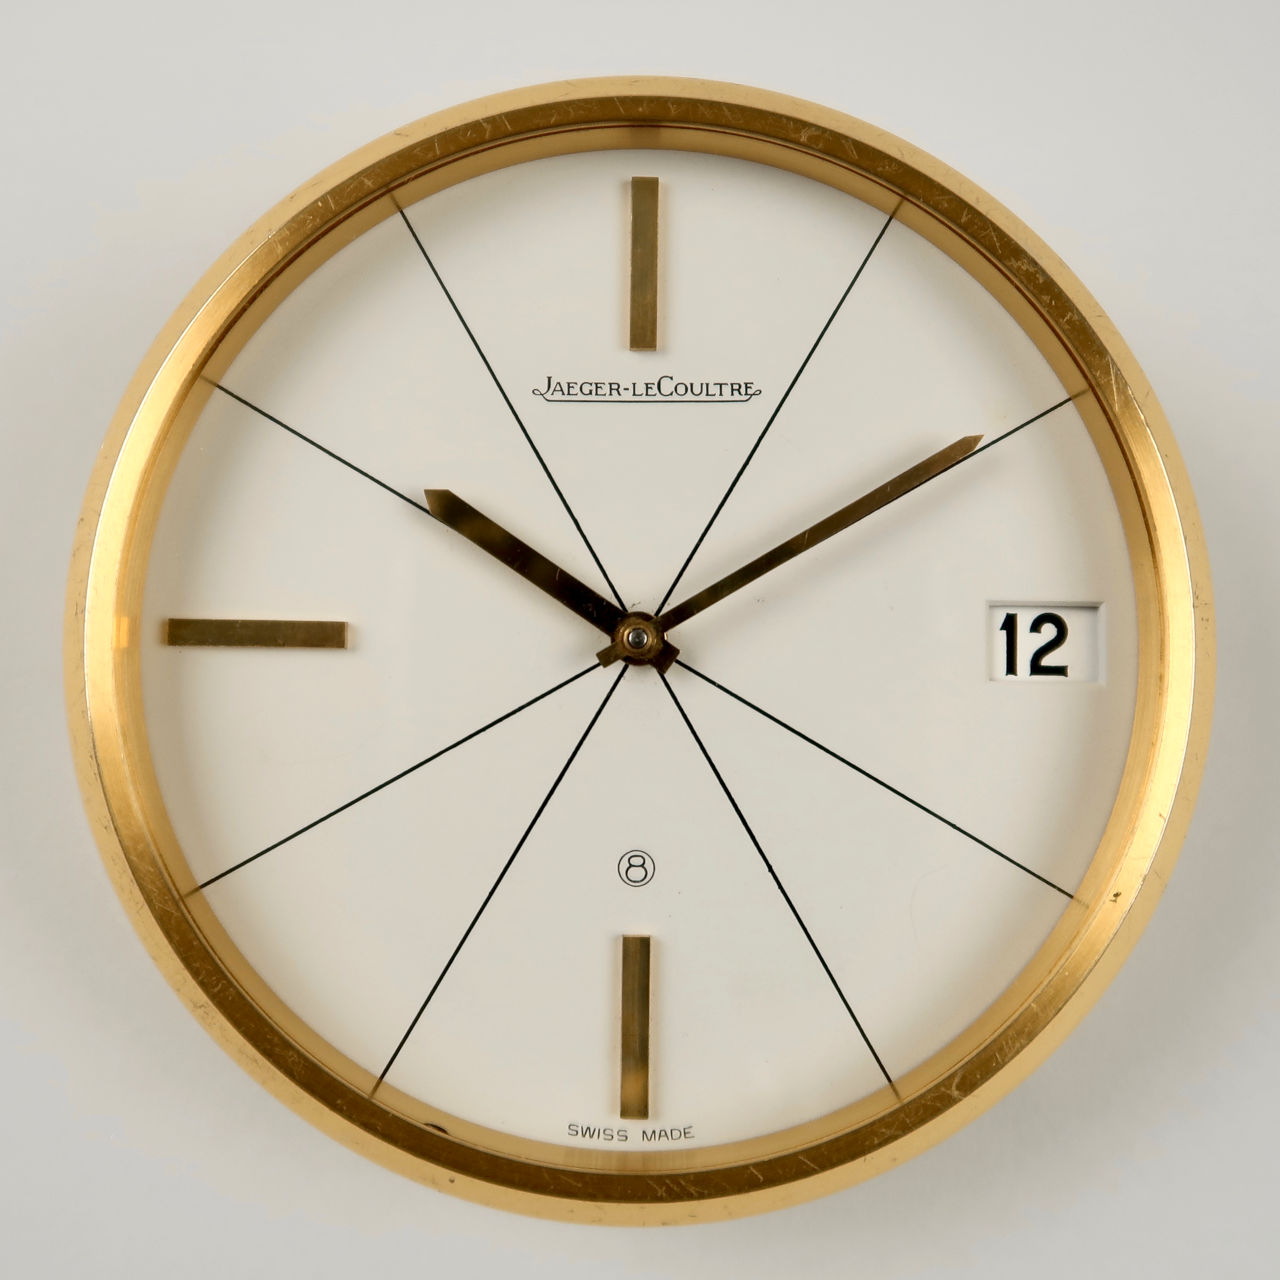 Jaeger-LeCoultre Ref. 383 circa 1960 | gilt brass manual vintage desk clock